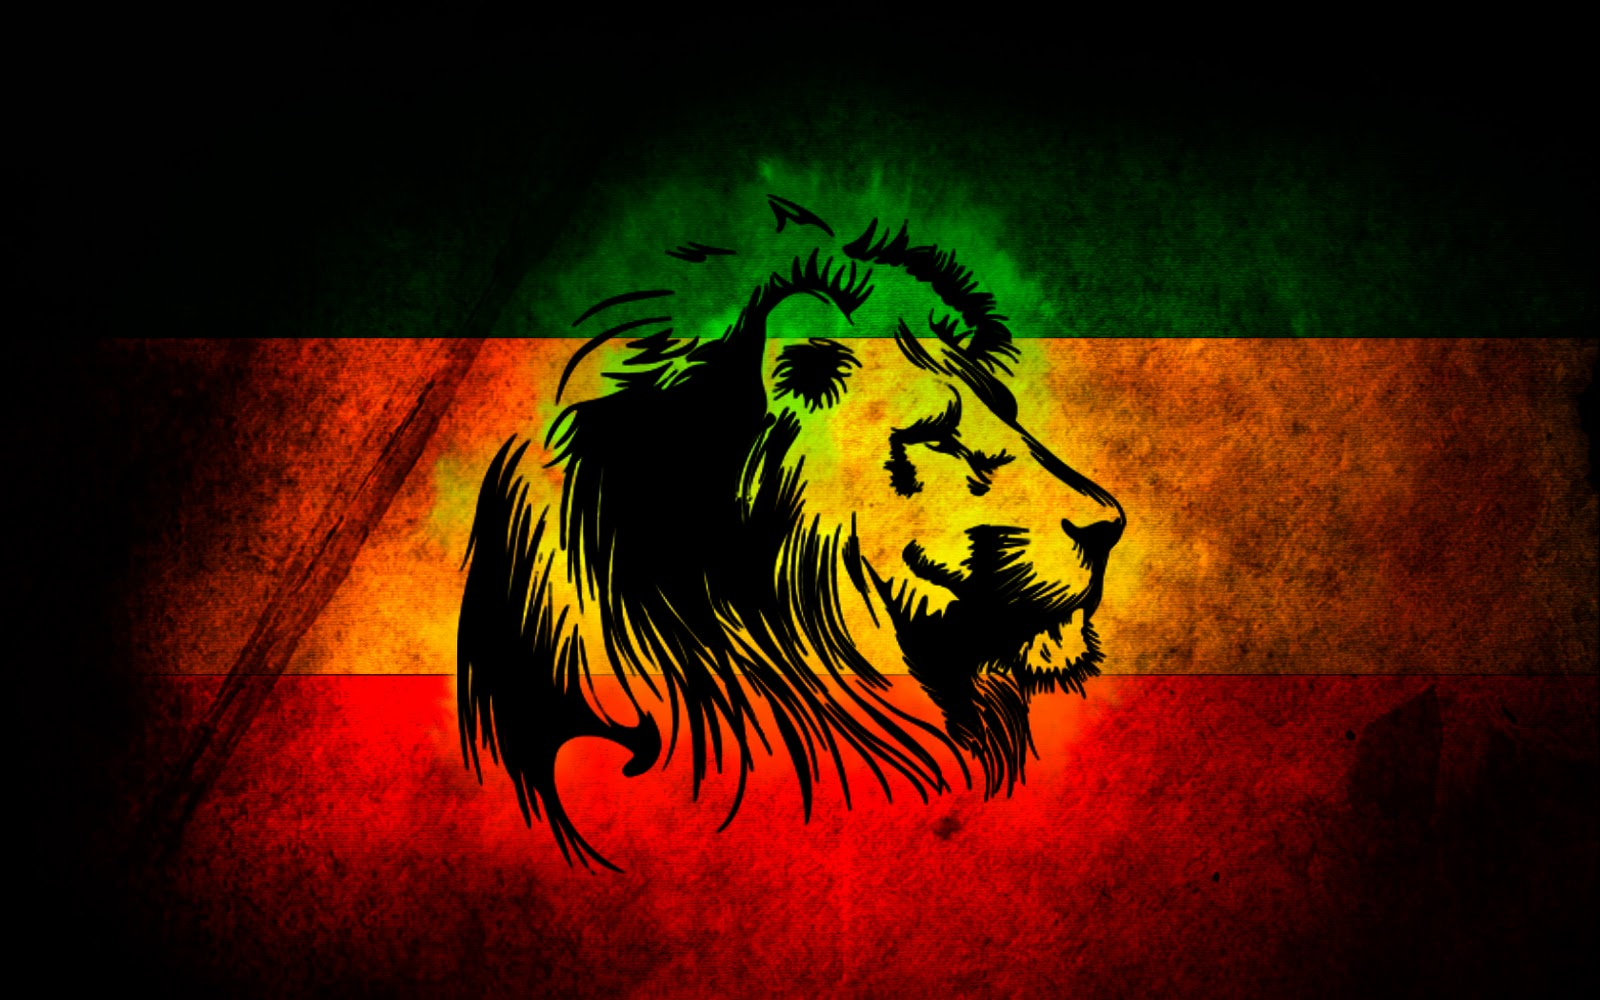 Rasta Backgrounds For Myspace   Rasta Lion Wallpapers   Rasta Smoke    Rasta Smoke Lion Wallpaper